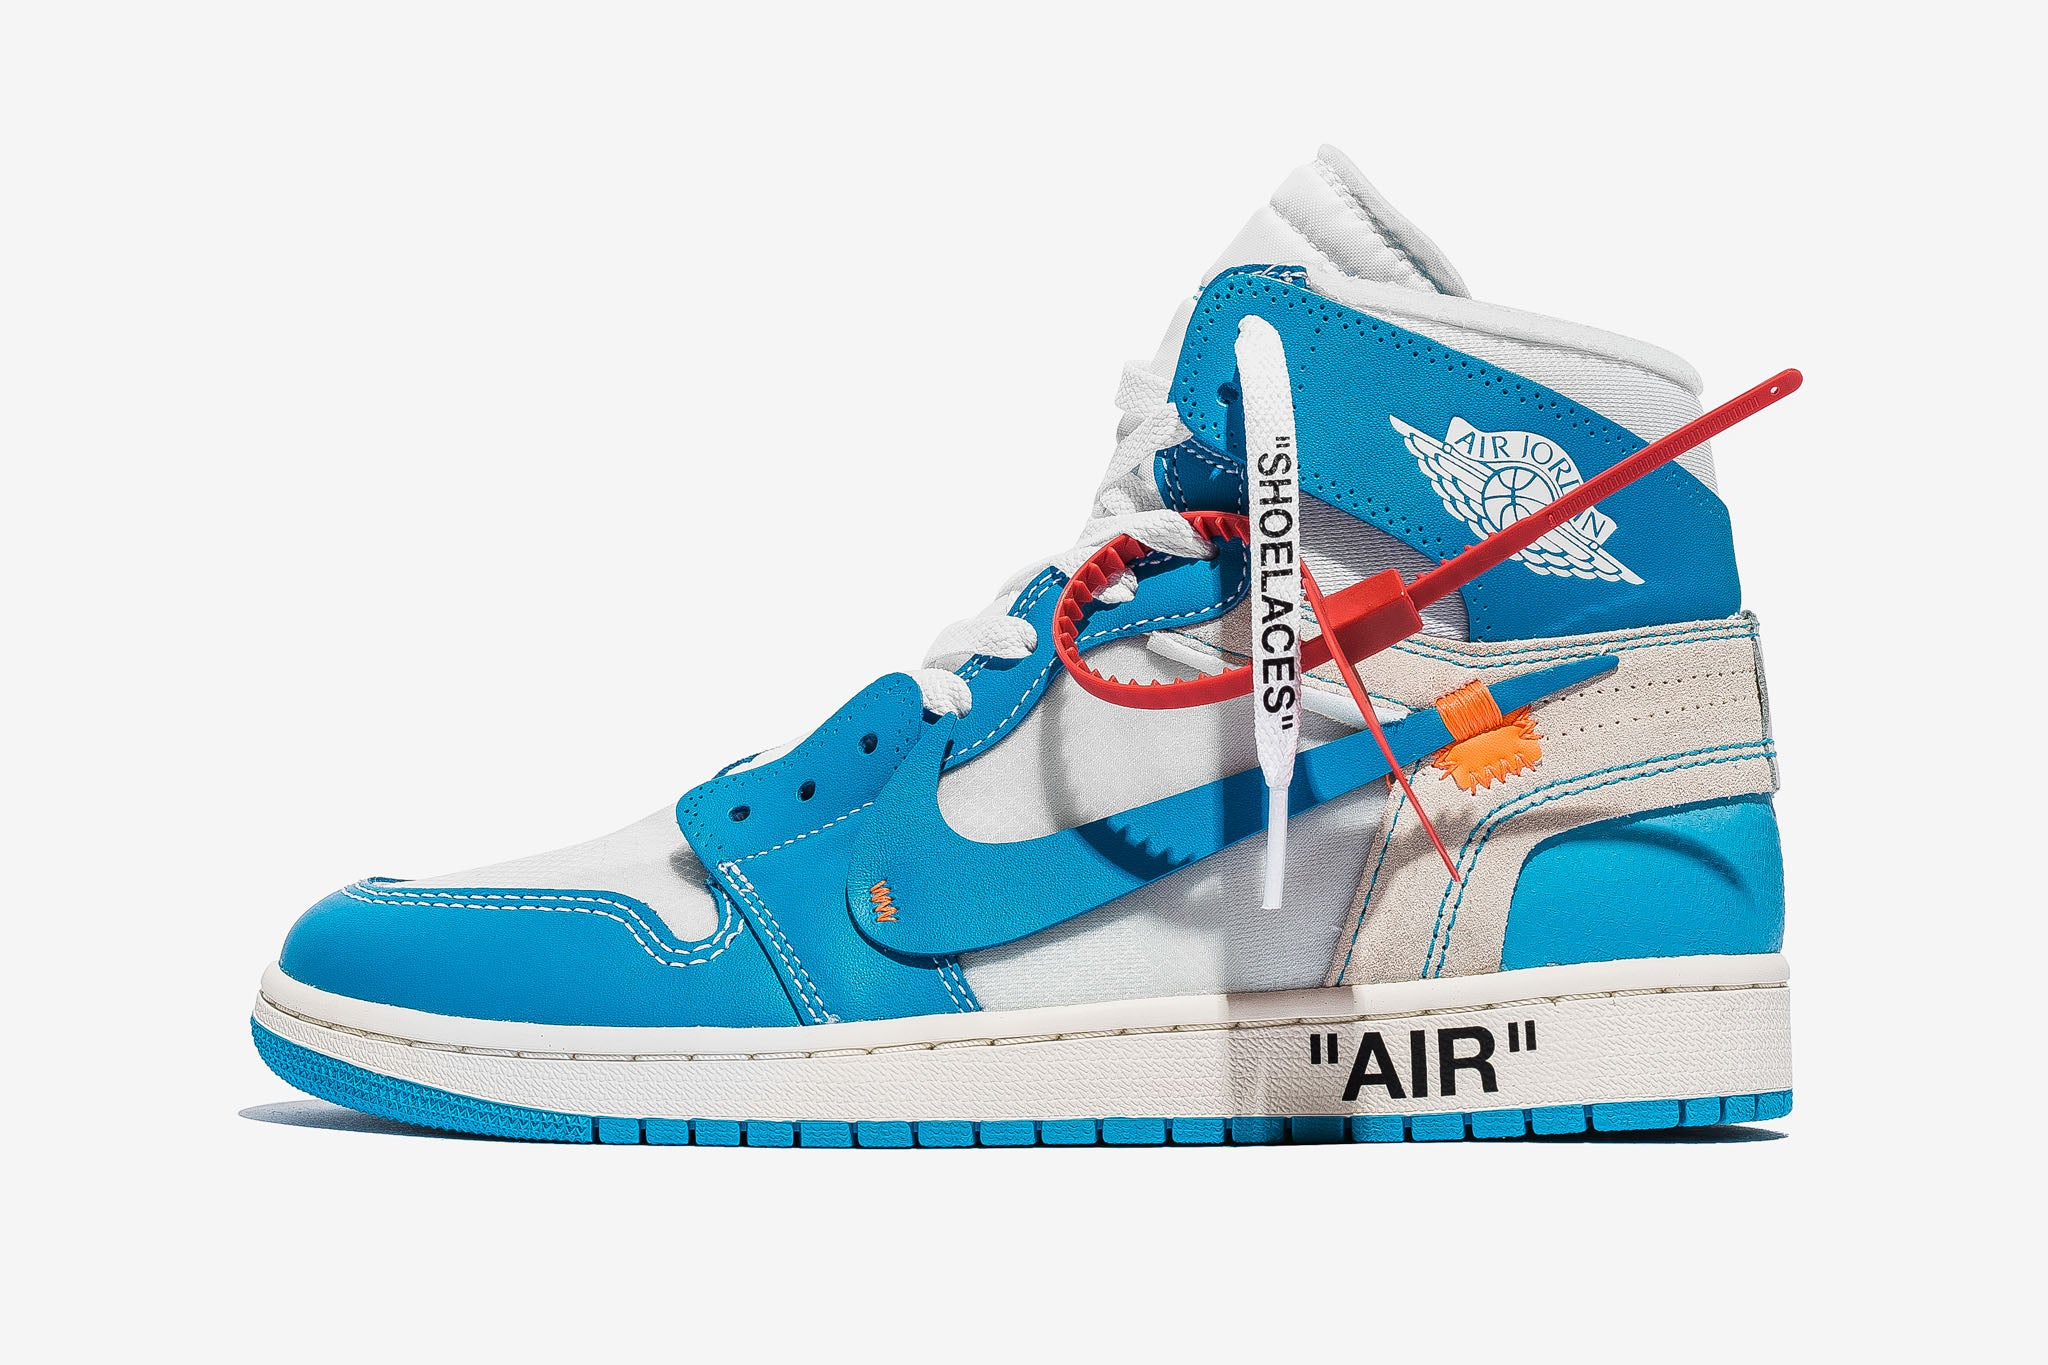 OFF–WHITE x Air Jordan 1